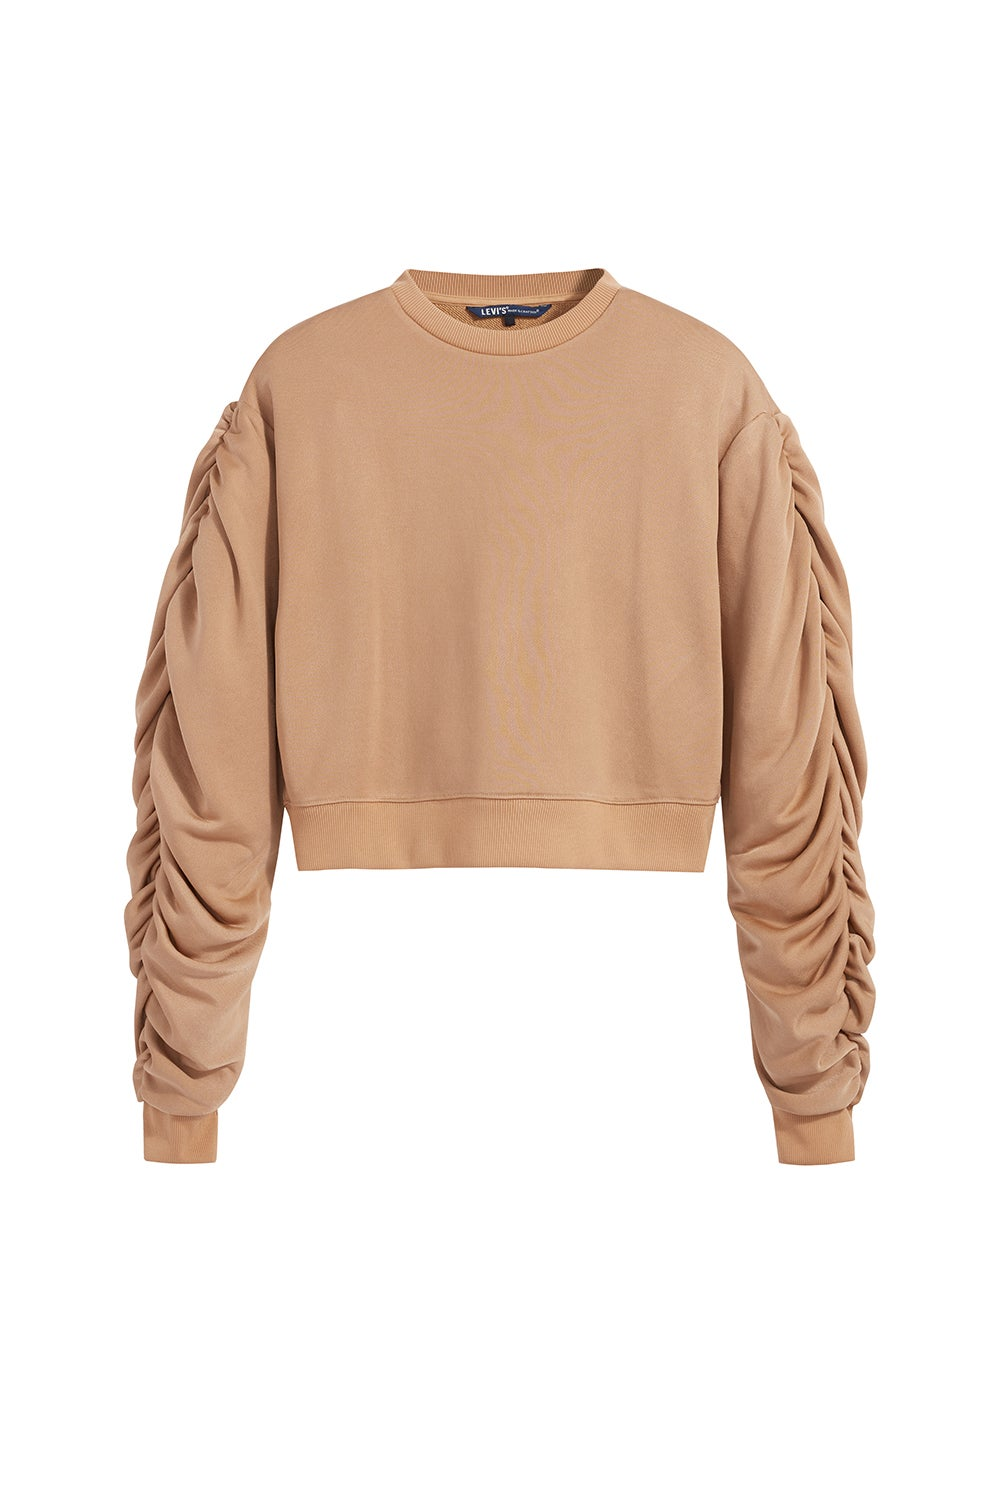 Levi's Made and Crafted Riptide Sweatshirt Tannin